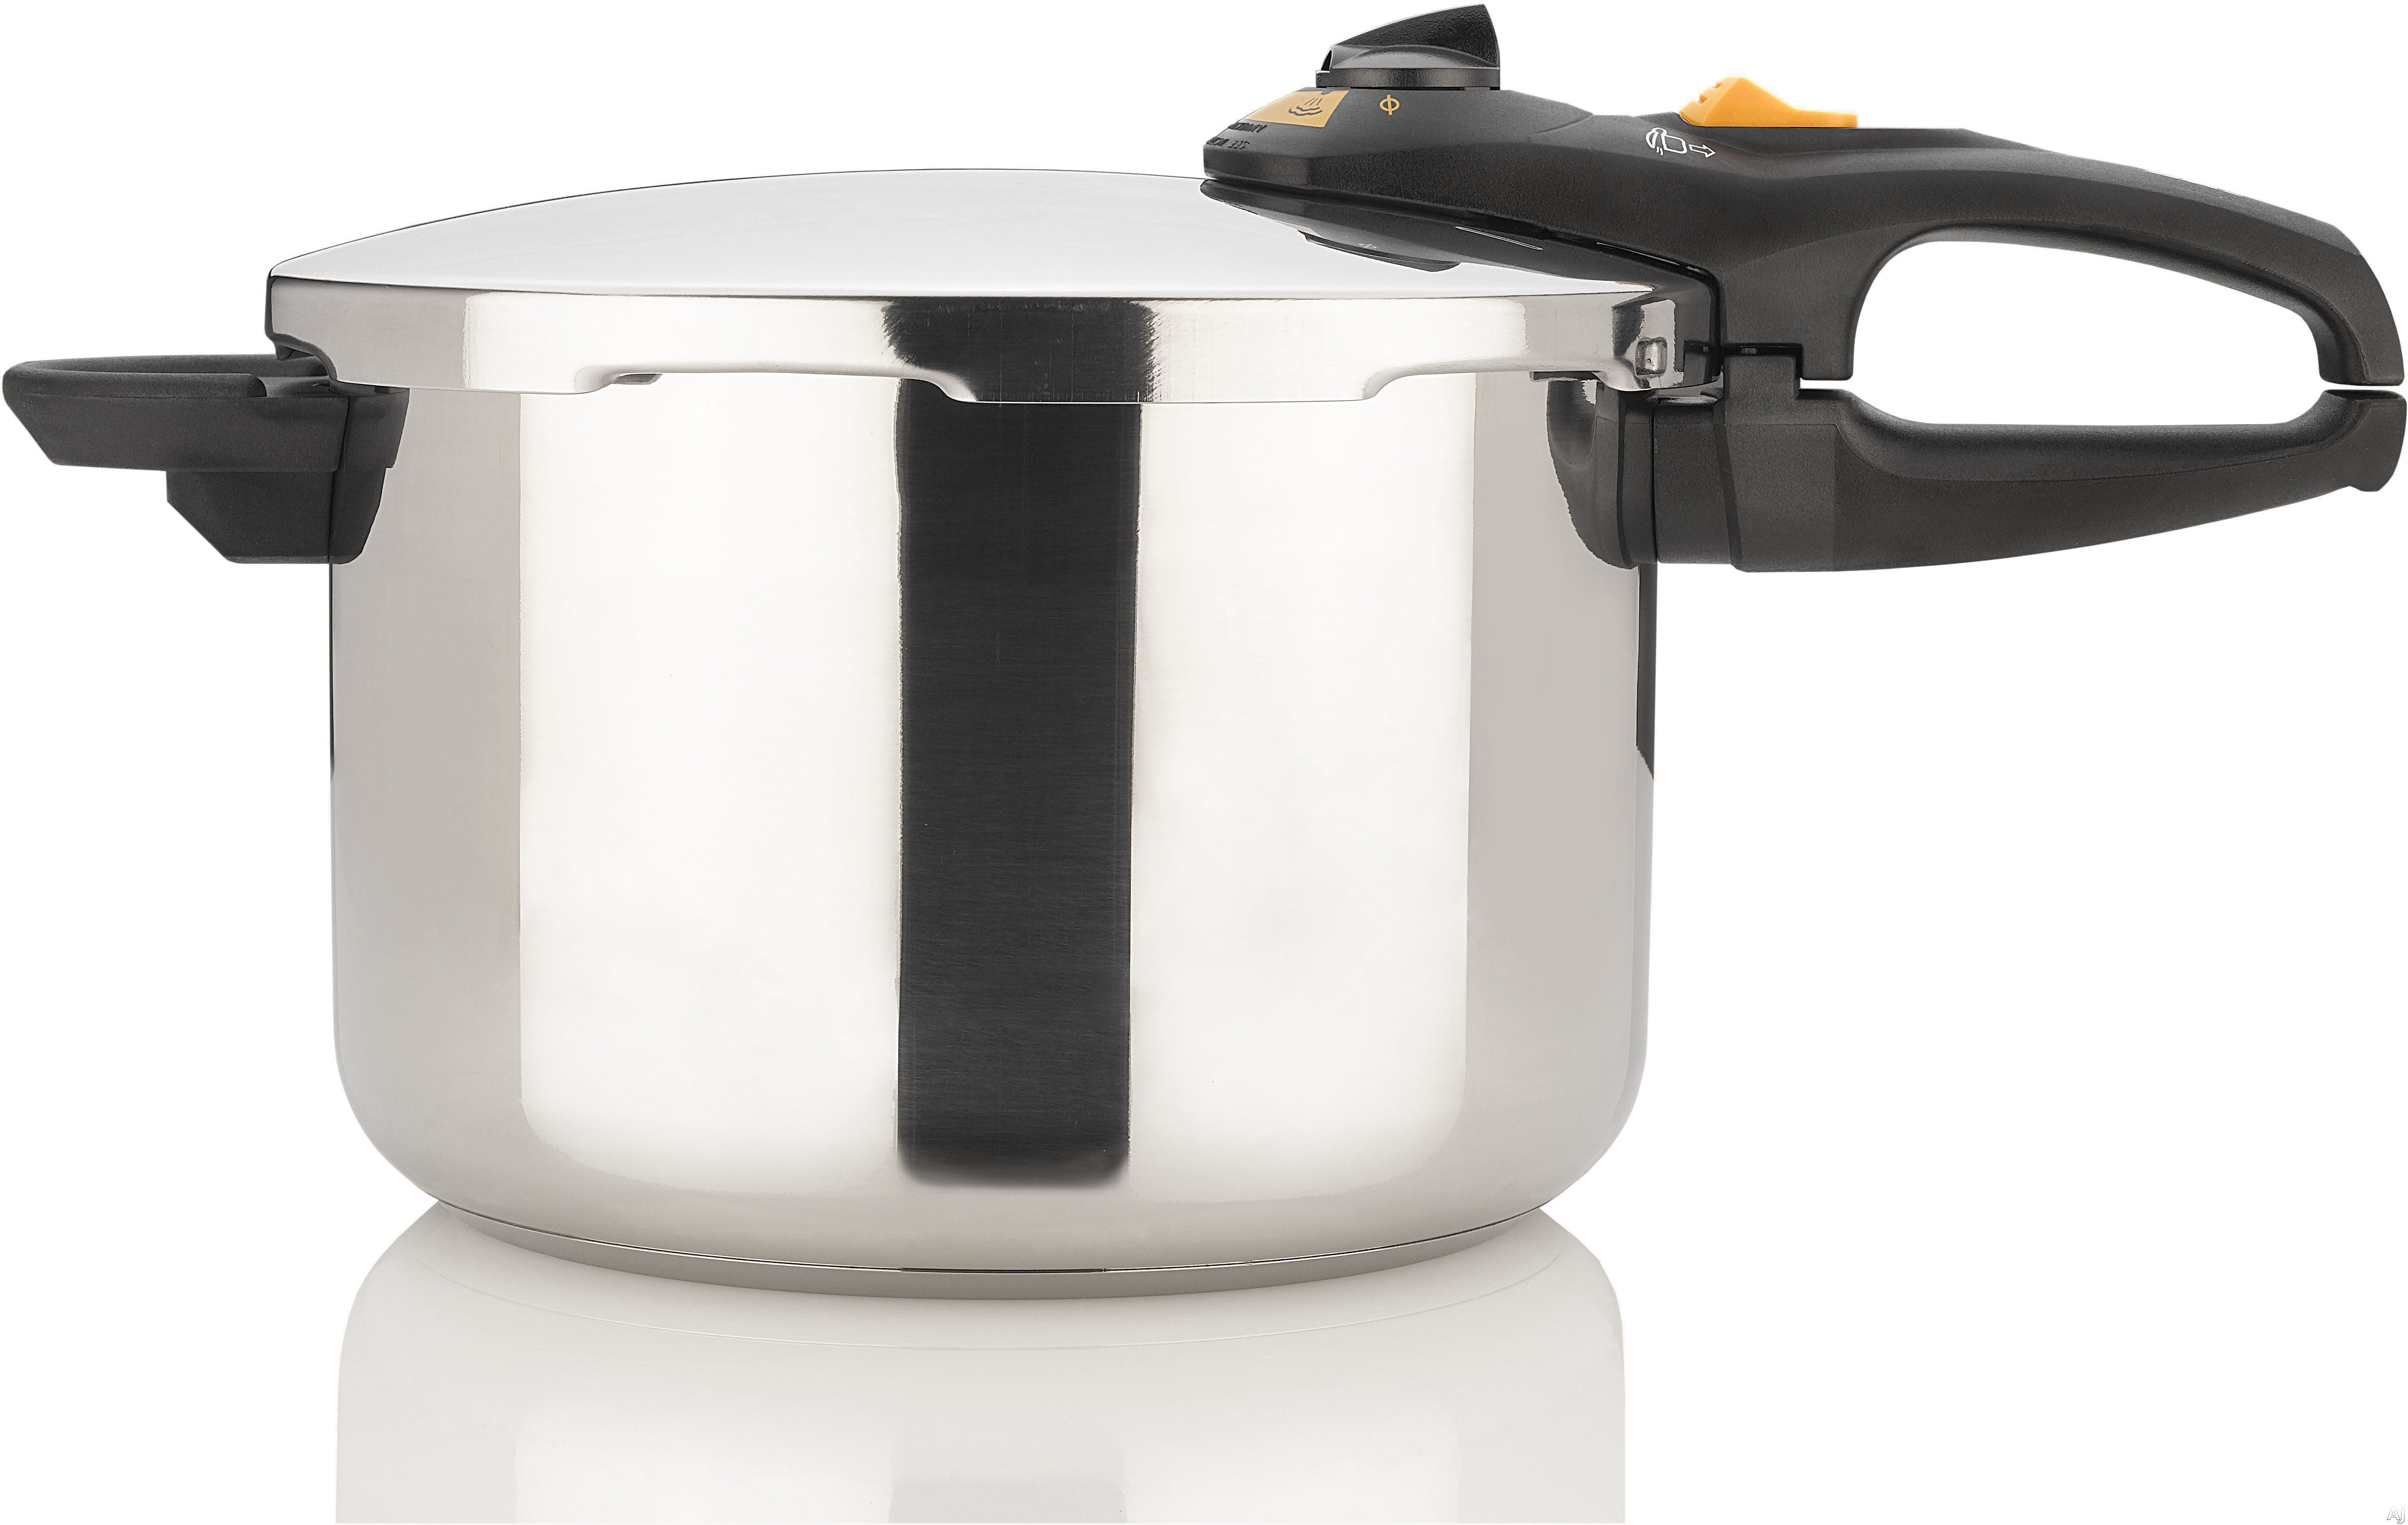 Image of Fagor 918060251 Duo 6-Quart Pressure Cooker with Triple Safety Mechanism, Induction Suitable, Dial Controls, Automatic Pressure Release, Stainless Steel, Steamer Basket and Trivet